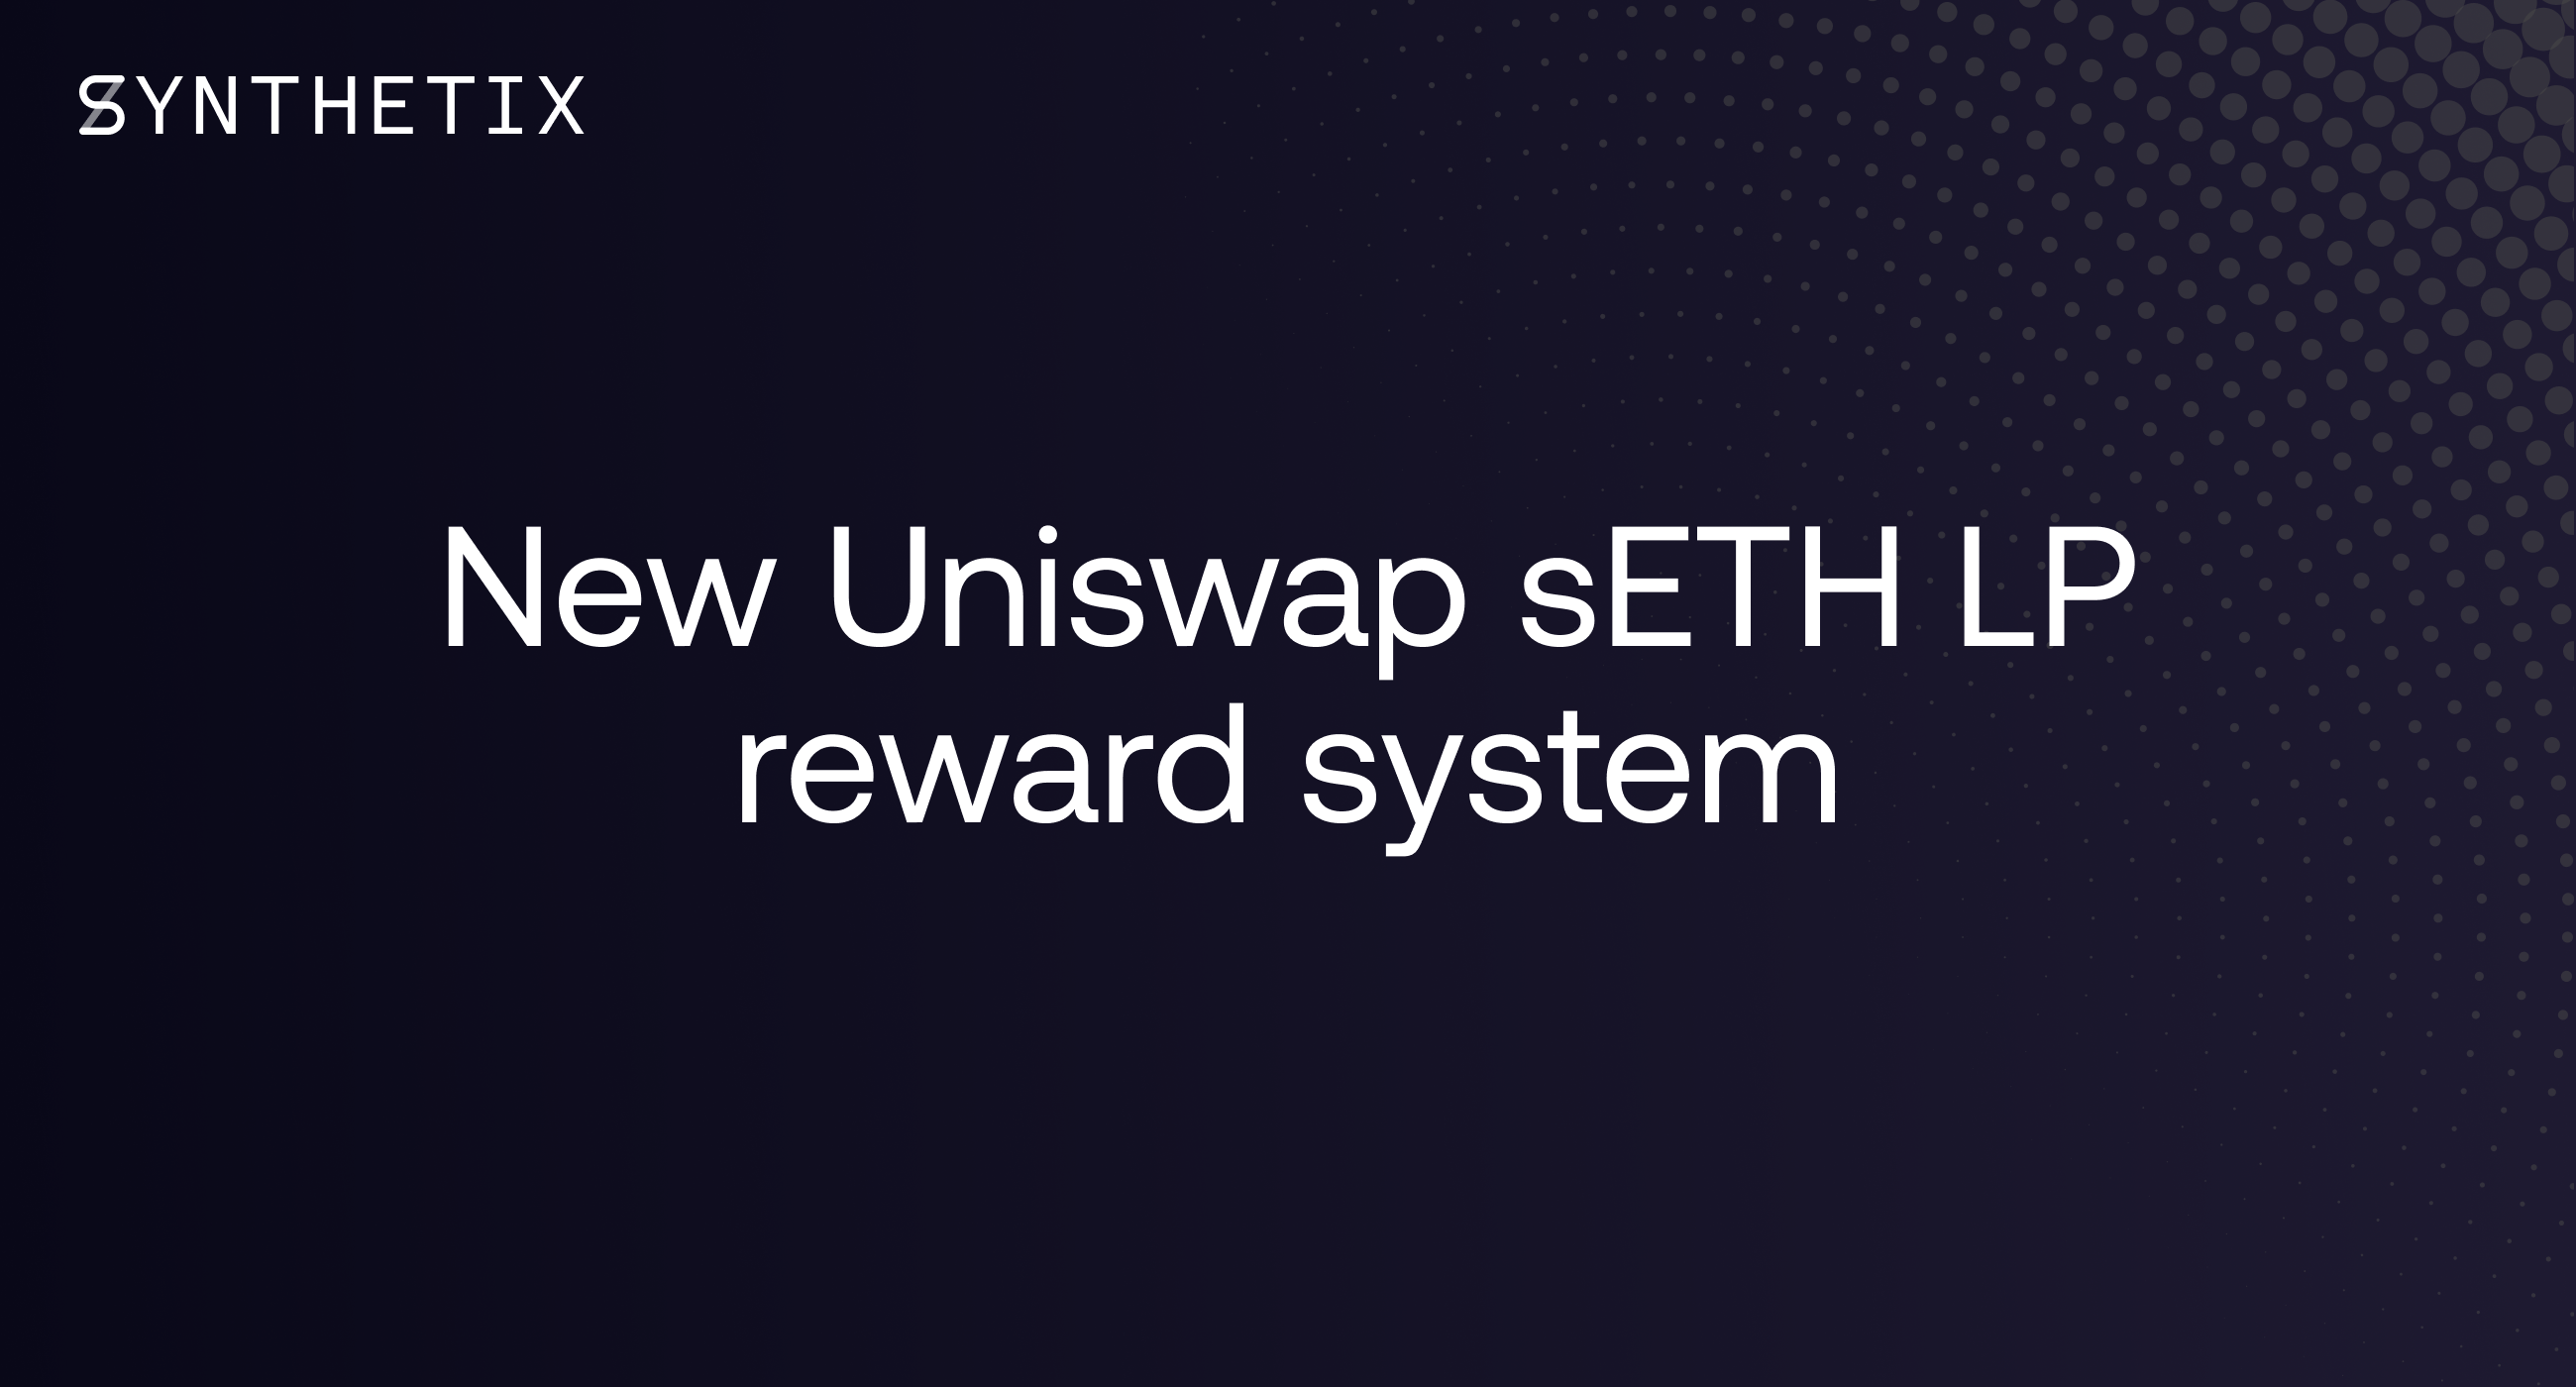 New Uniswap sETH LP reward system